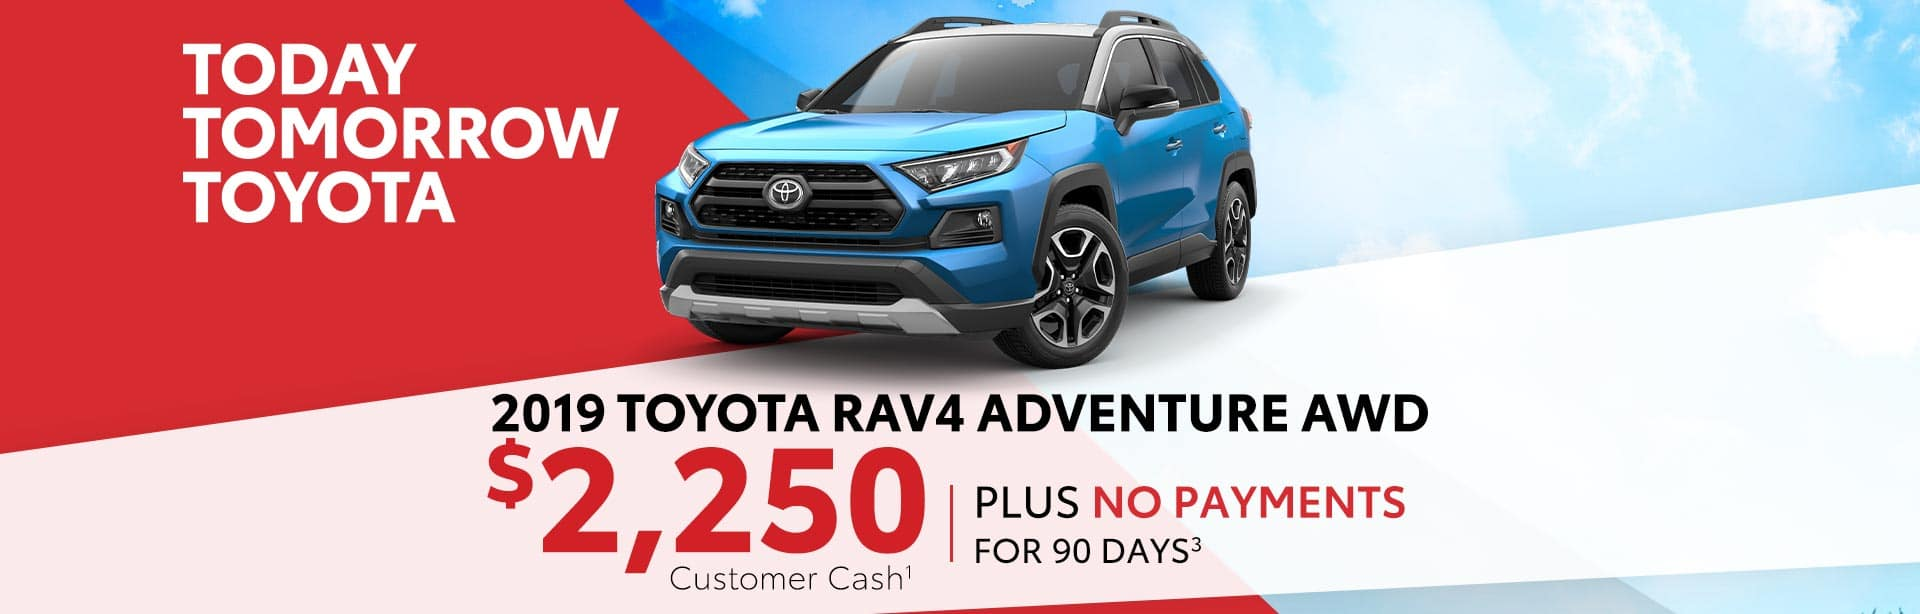 No Payments for 90 days on a new Rav4 in Taylorsville, Indiana